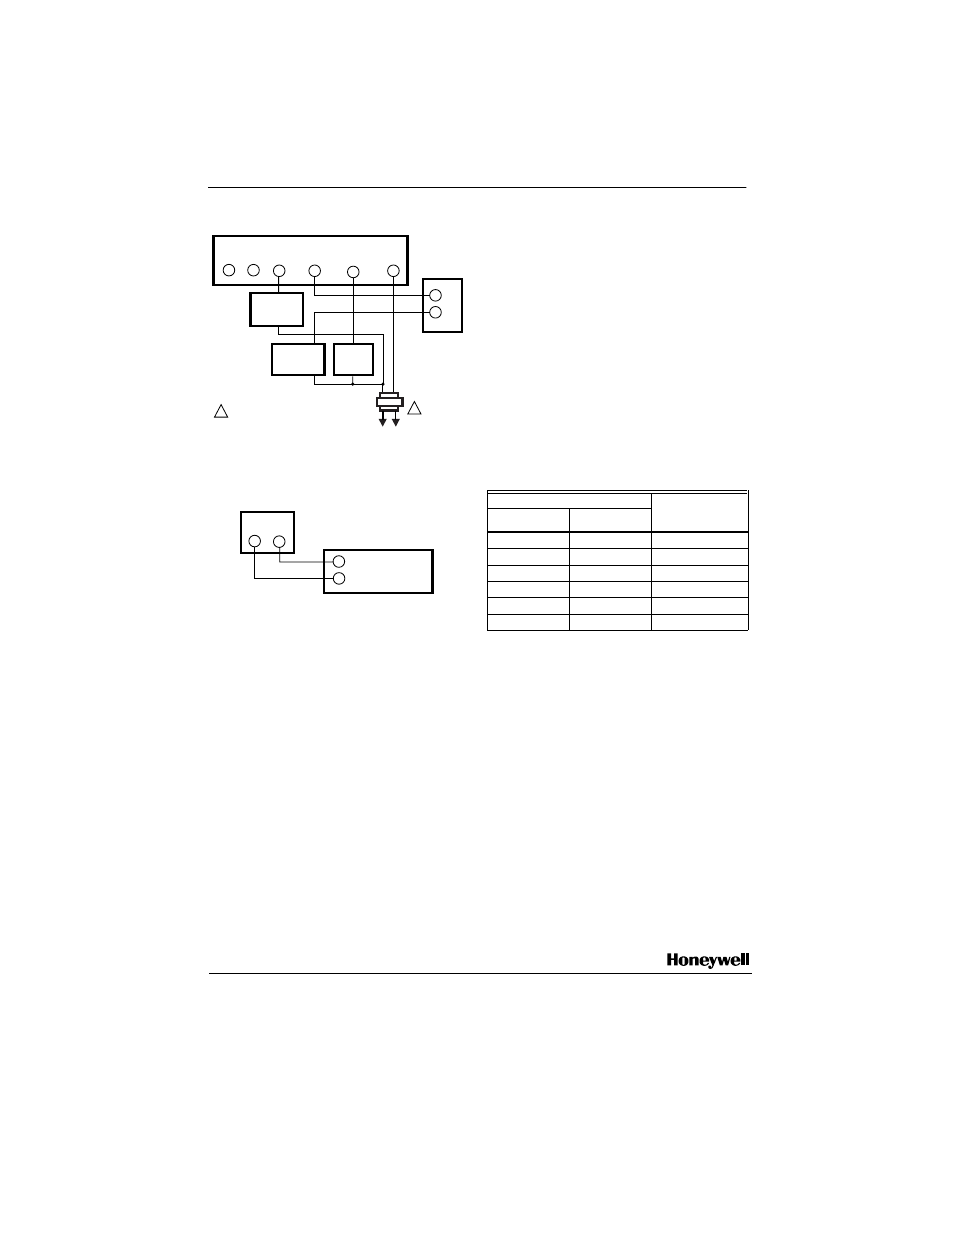 Adjustments Operation And Checkout Humidity Control Adjustment. Adjustments Operation And Checkout Humidity Control Adjustment Honeywell H8908b Humidistat User Manual Page 4. Wiring. Honeywell Humidistat Wiring Diagrams At Scoala.co